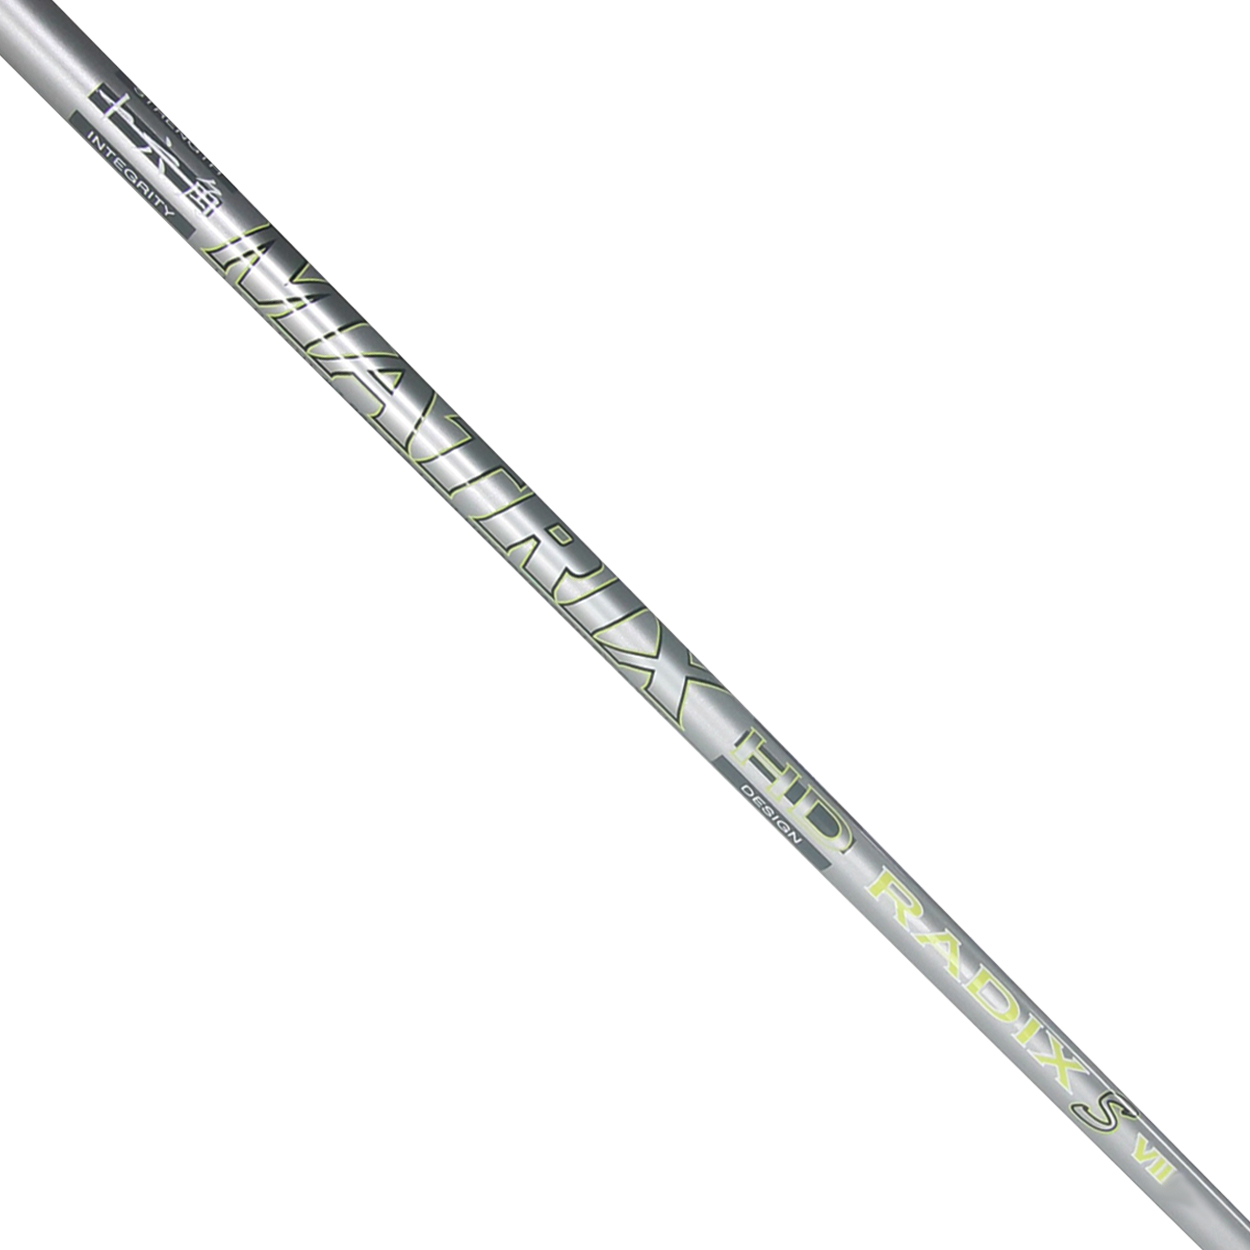 Matrix Golf Radix S VII Strong Flex Graphite Driver Shaft